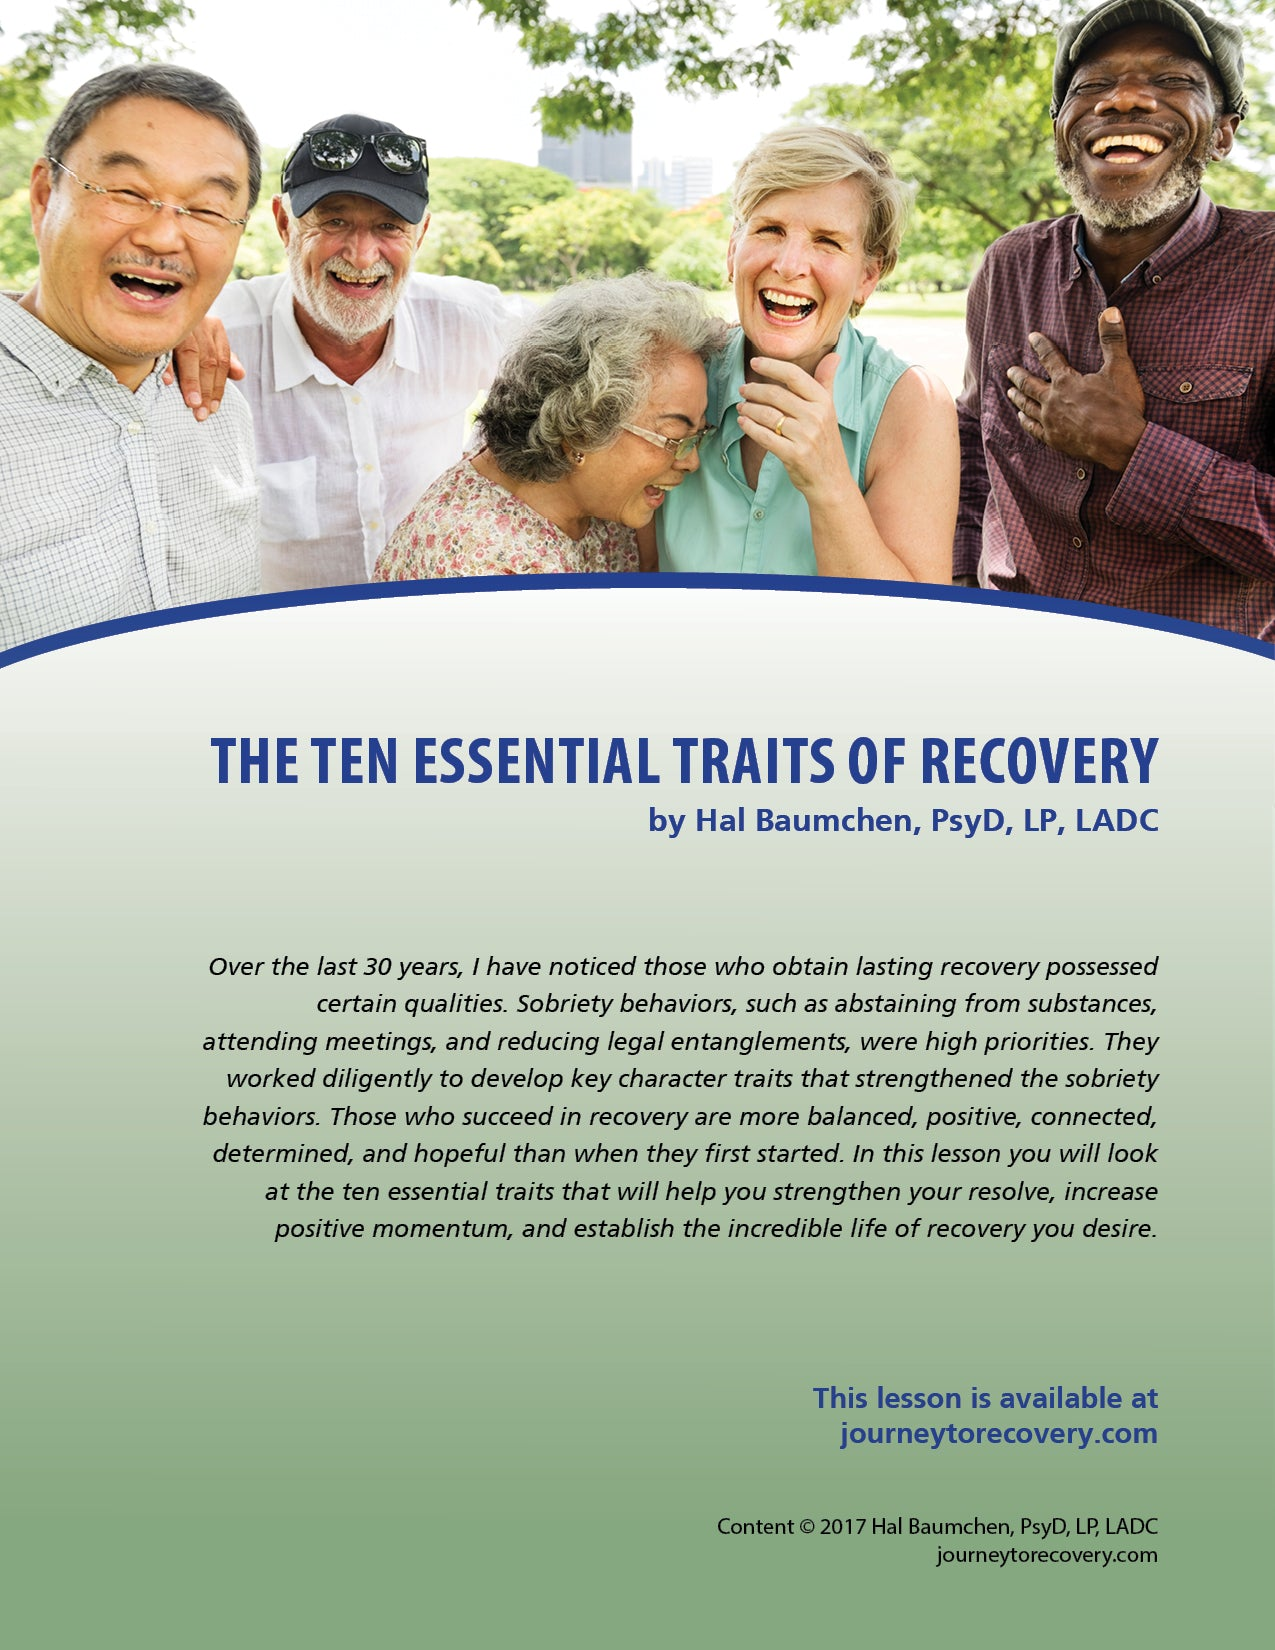 The Ten Essential Traits of Recovery